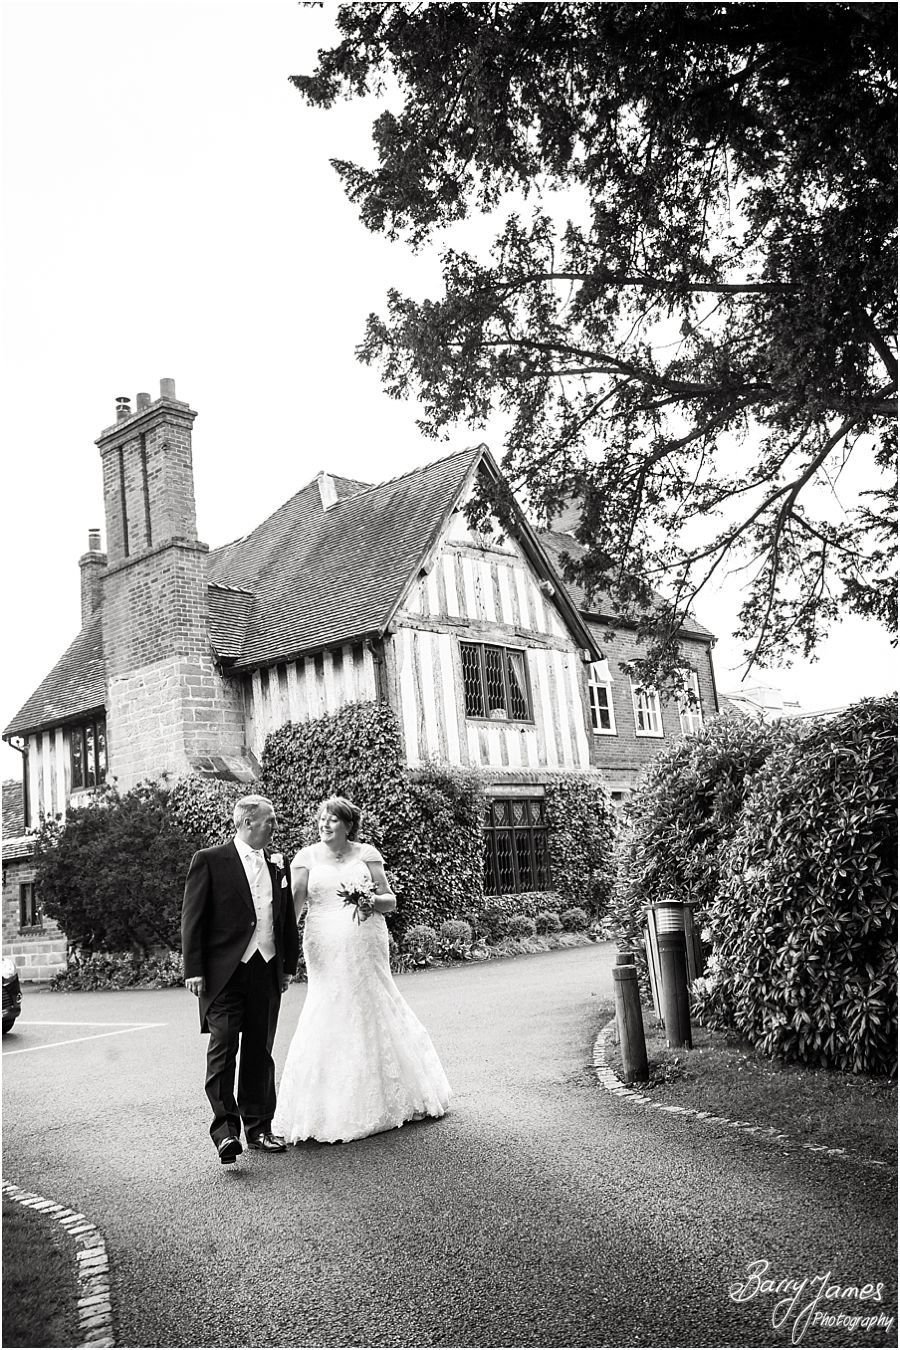 Creative timeless wedding photographs at The Moat House in Acton Trussell by Recommended Wedding Photographer Barry James